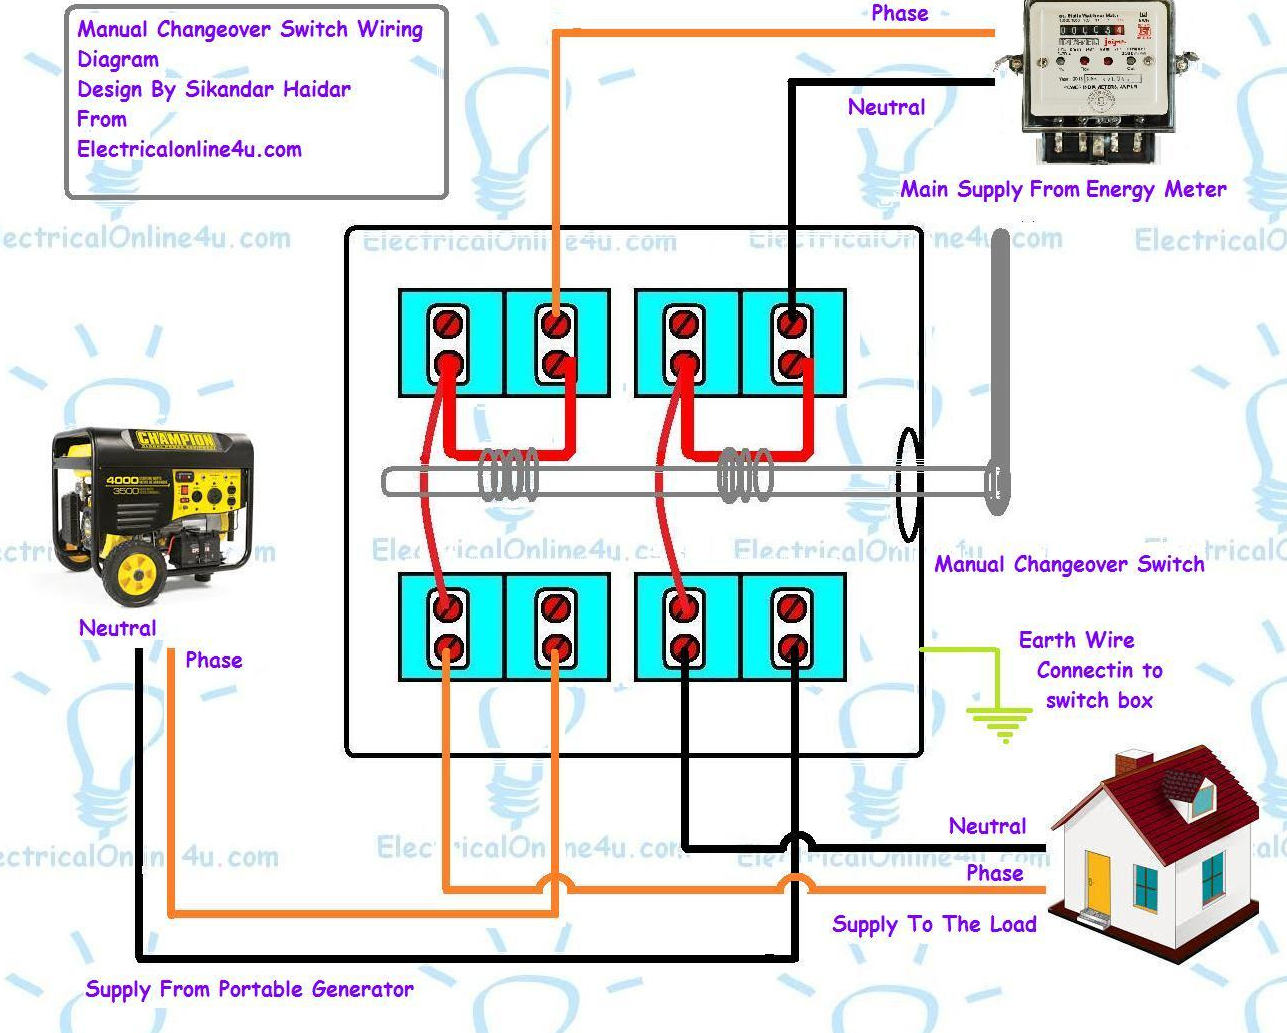 Generator changeover switch wiring diagram australia somurich generator changeover switch wiring diagram australia wiring diagram changeover switch choice image diagram sample cheapraybanclubmaster Gallery